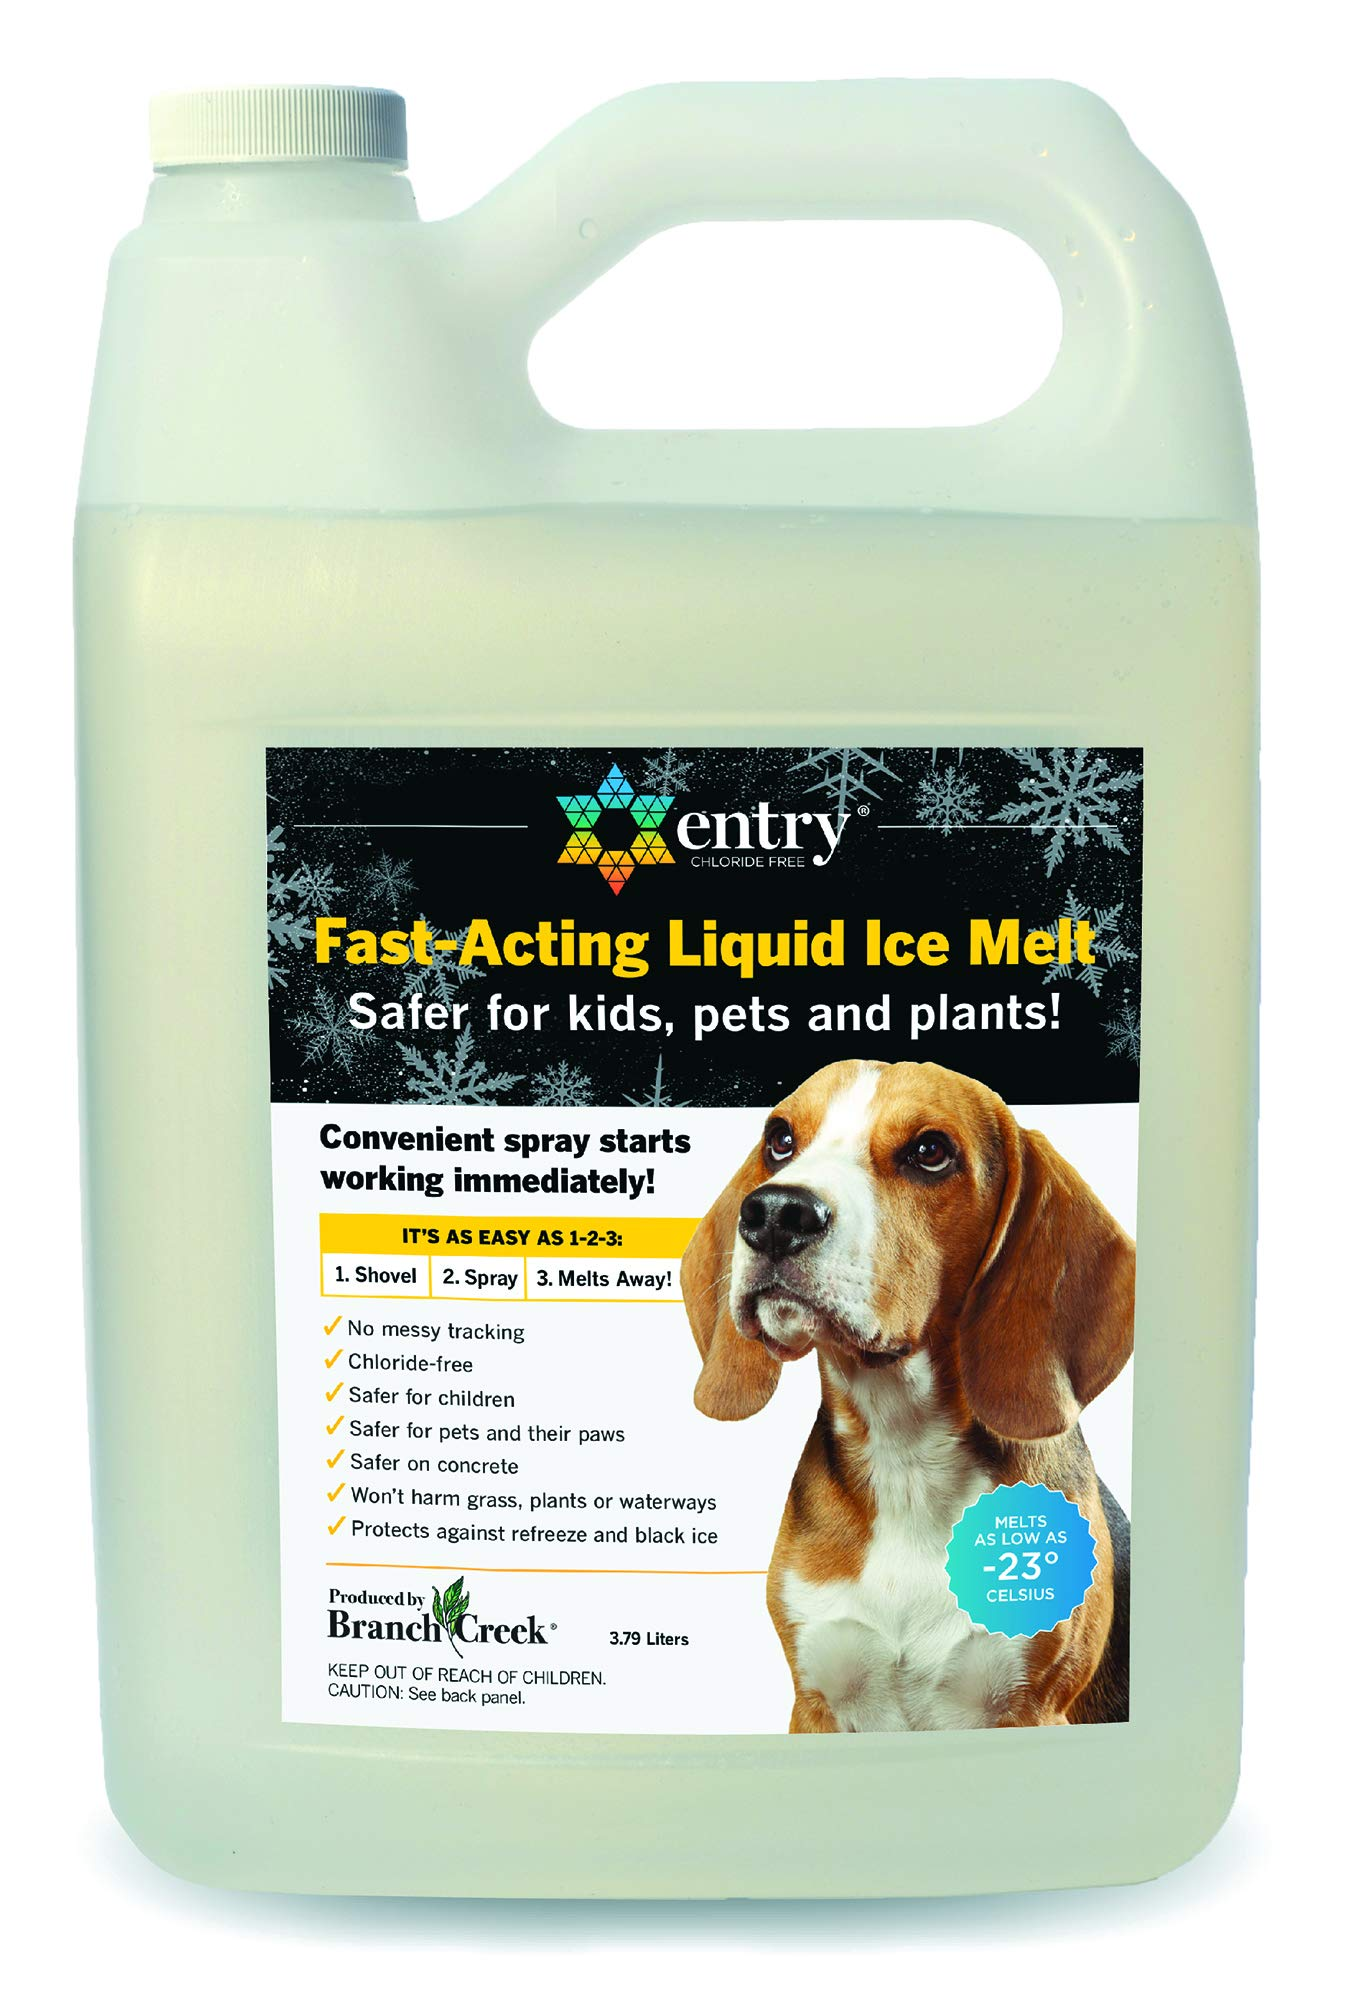 Branch Creek Entry Chloride-Free, Non-Toxic, Liquid Snow and Ice Melt Safer for Pets, Plants, Floors, Concrete, Sidewalks, and Metal for Residential or Commercial Use (1 Gallon) by Branch Creek